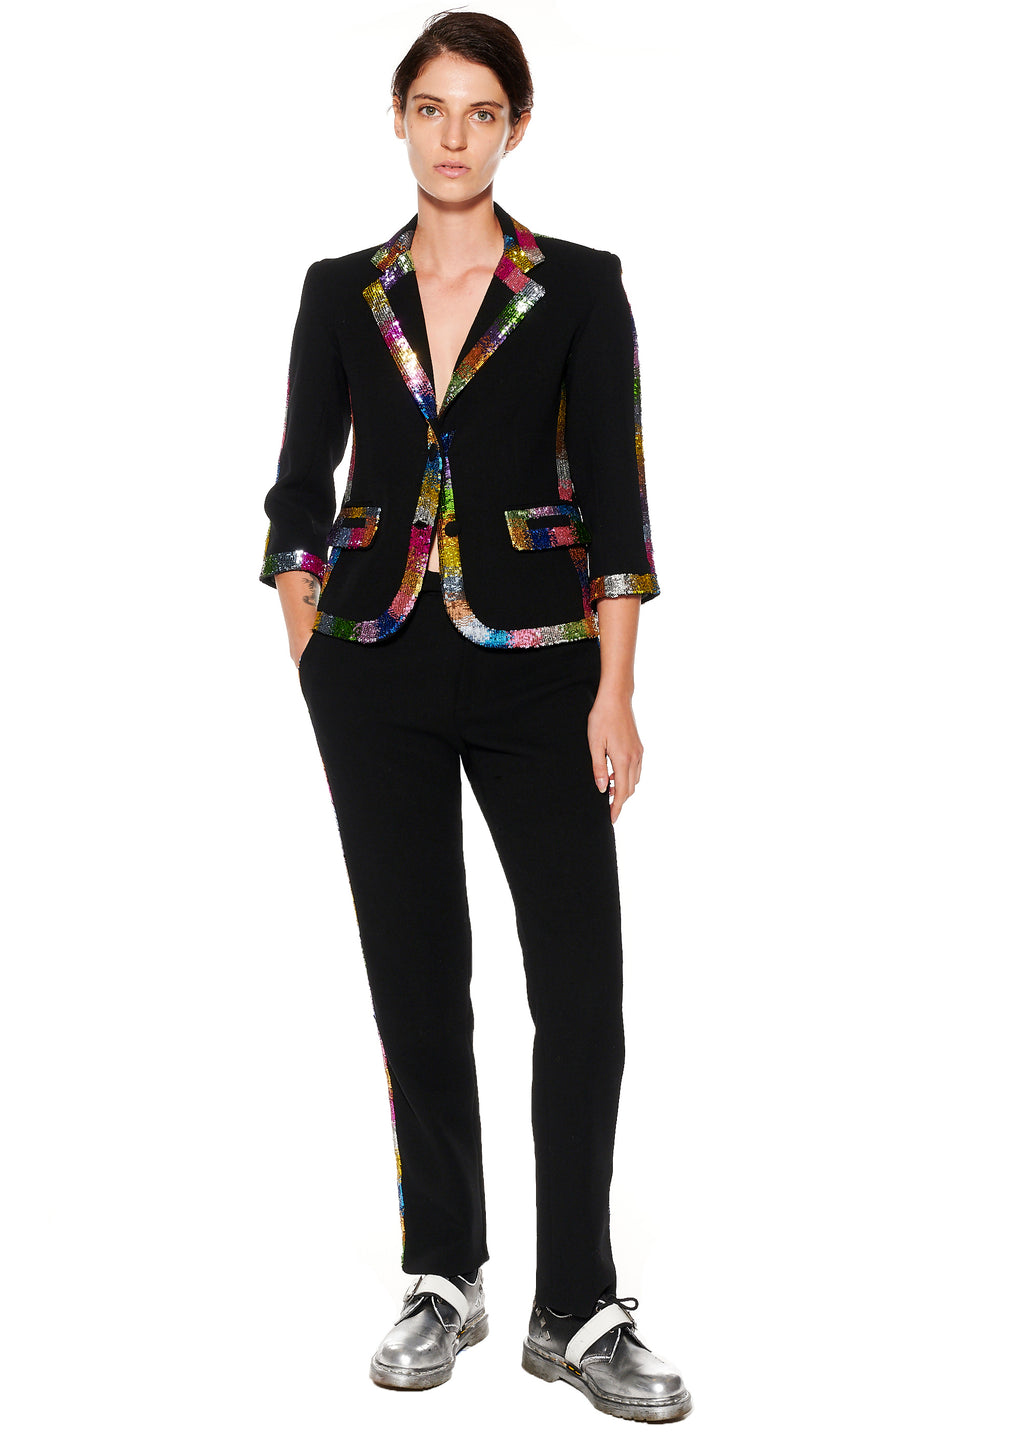 """ELECTRIC DREAMS"" PAILLETTE BLAZER - Women's Jackets & Coats - Libertine"